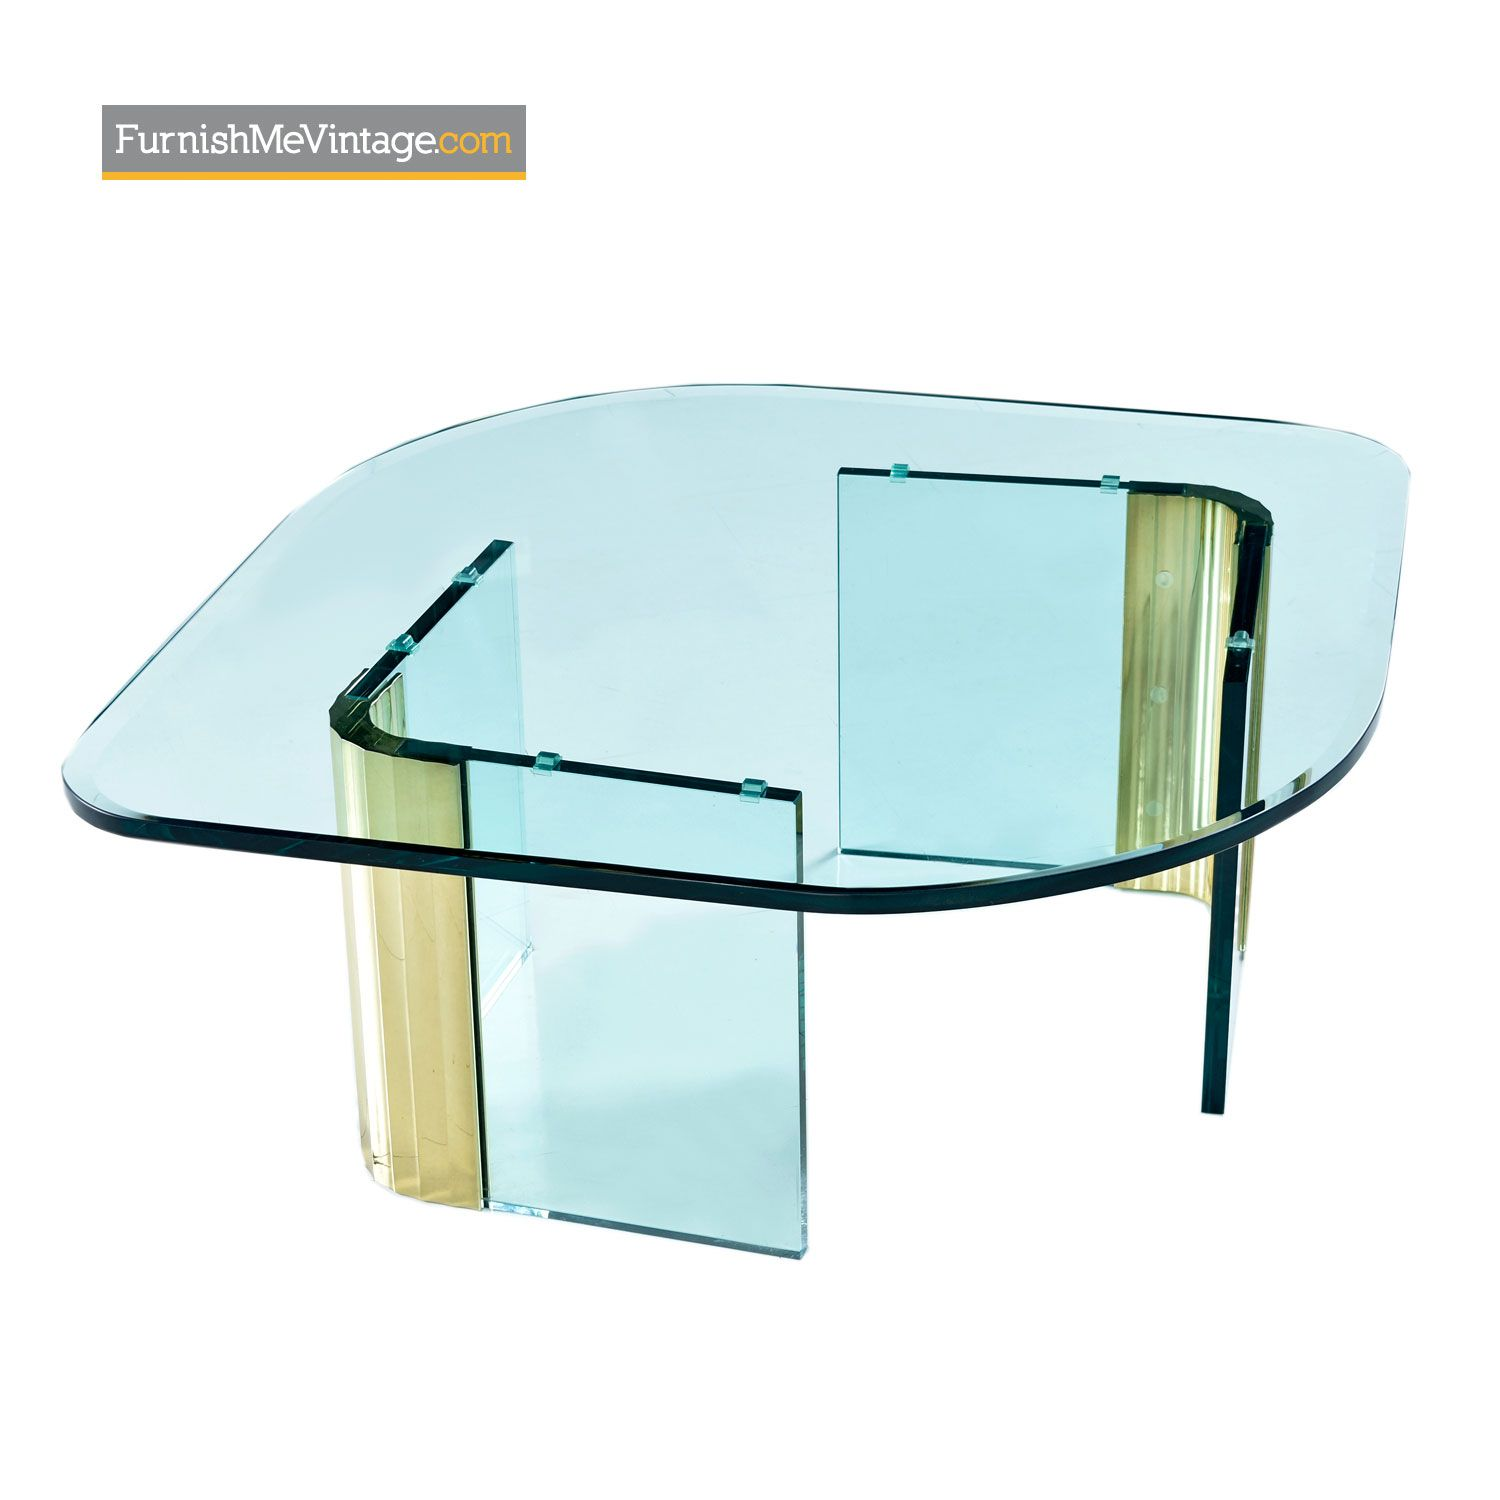 Leon Rosen Pace Collection Scalloped Brass Glass Coffee Table Glass Coffee Table Contract Interior Design Glass [ 1500 x 1500 Pixel ]